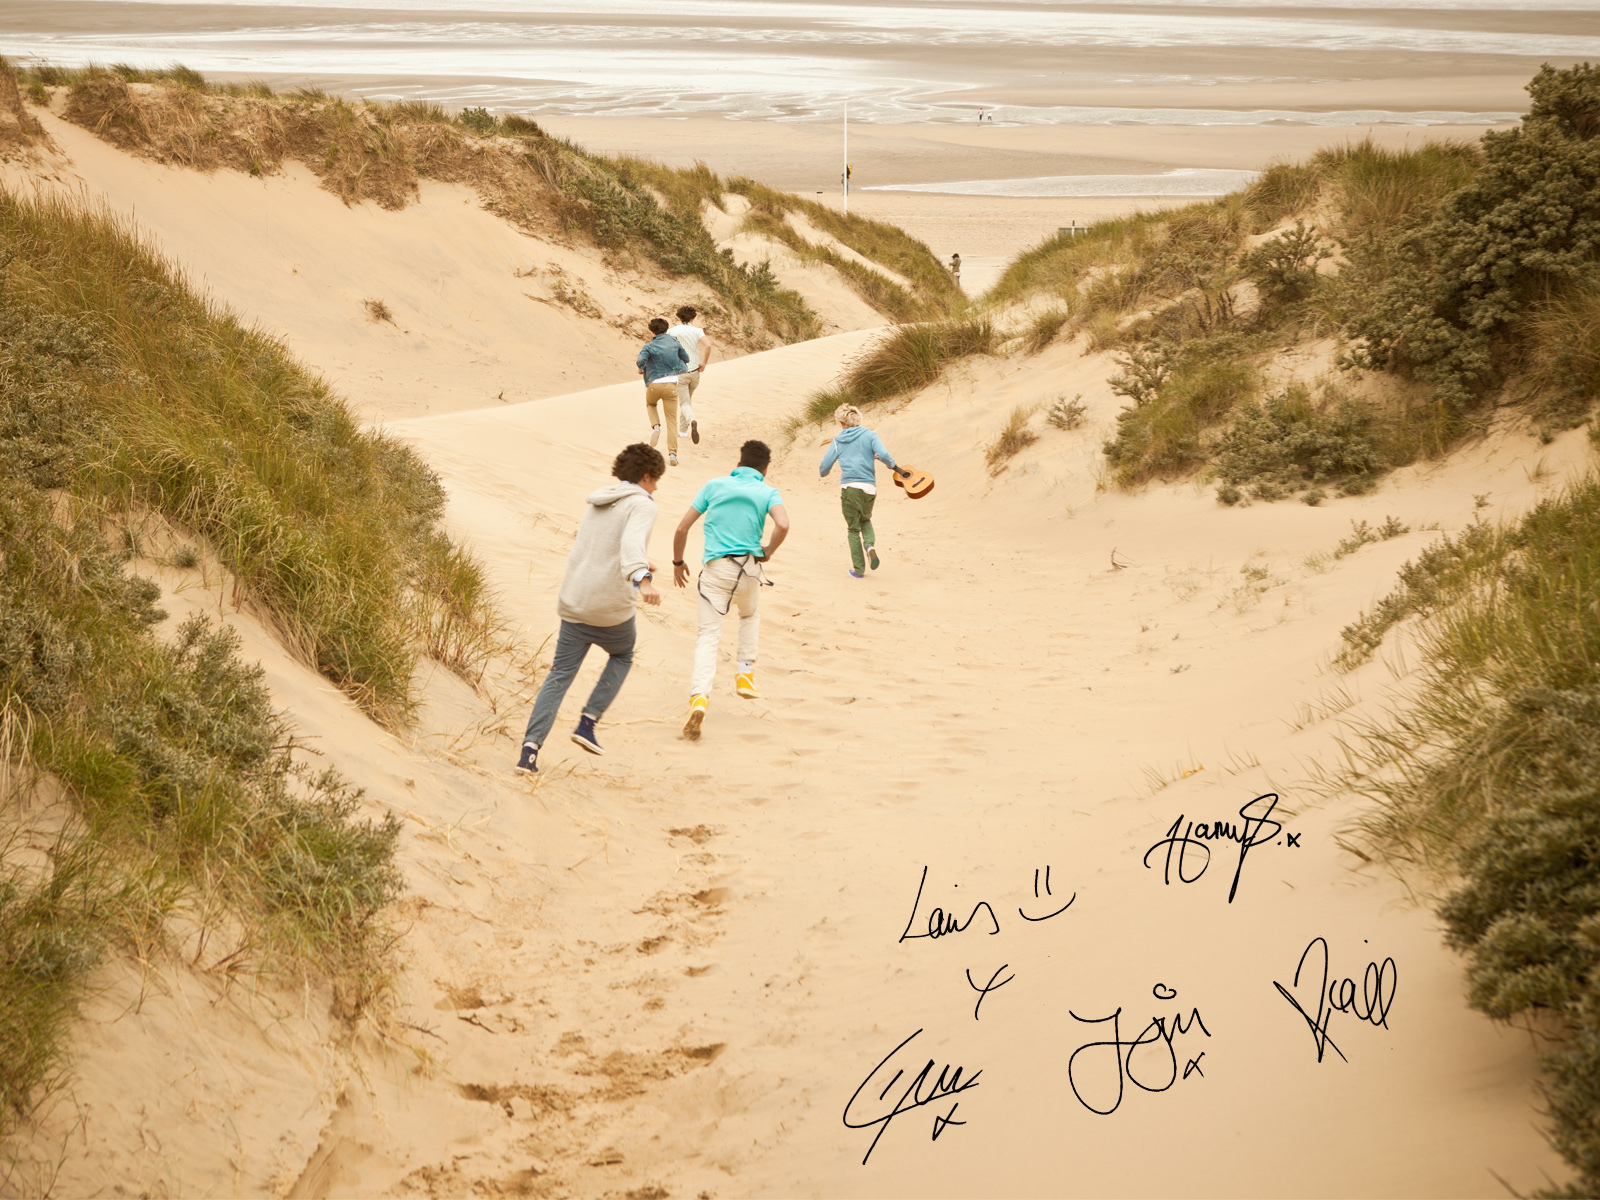 HQ pic for 'Up All Night' x♥x